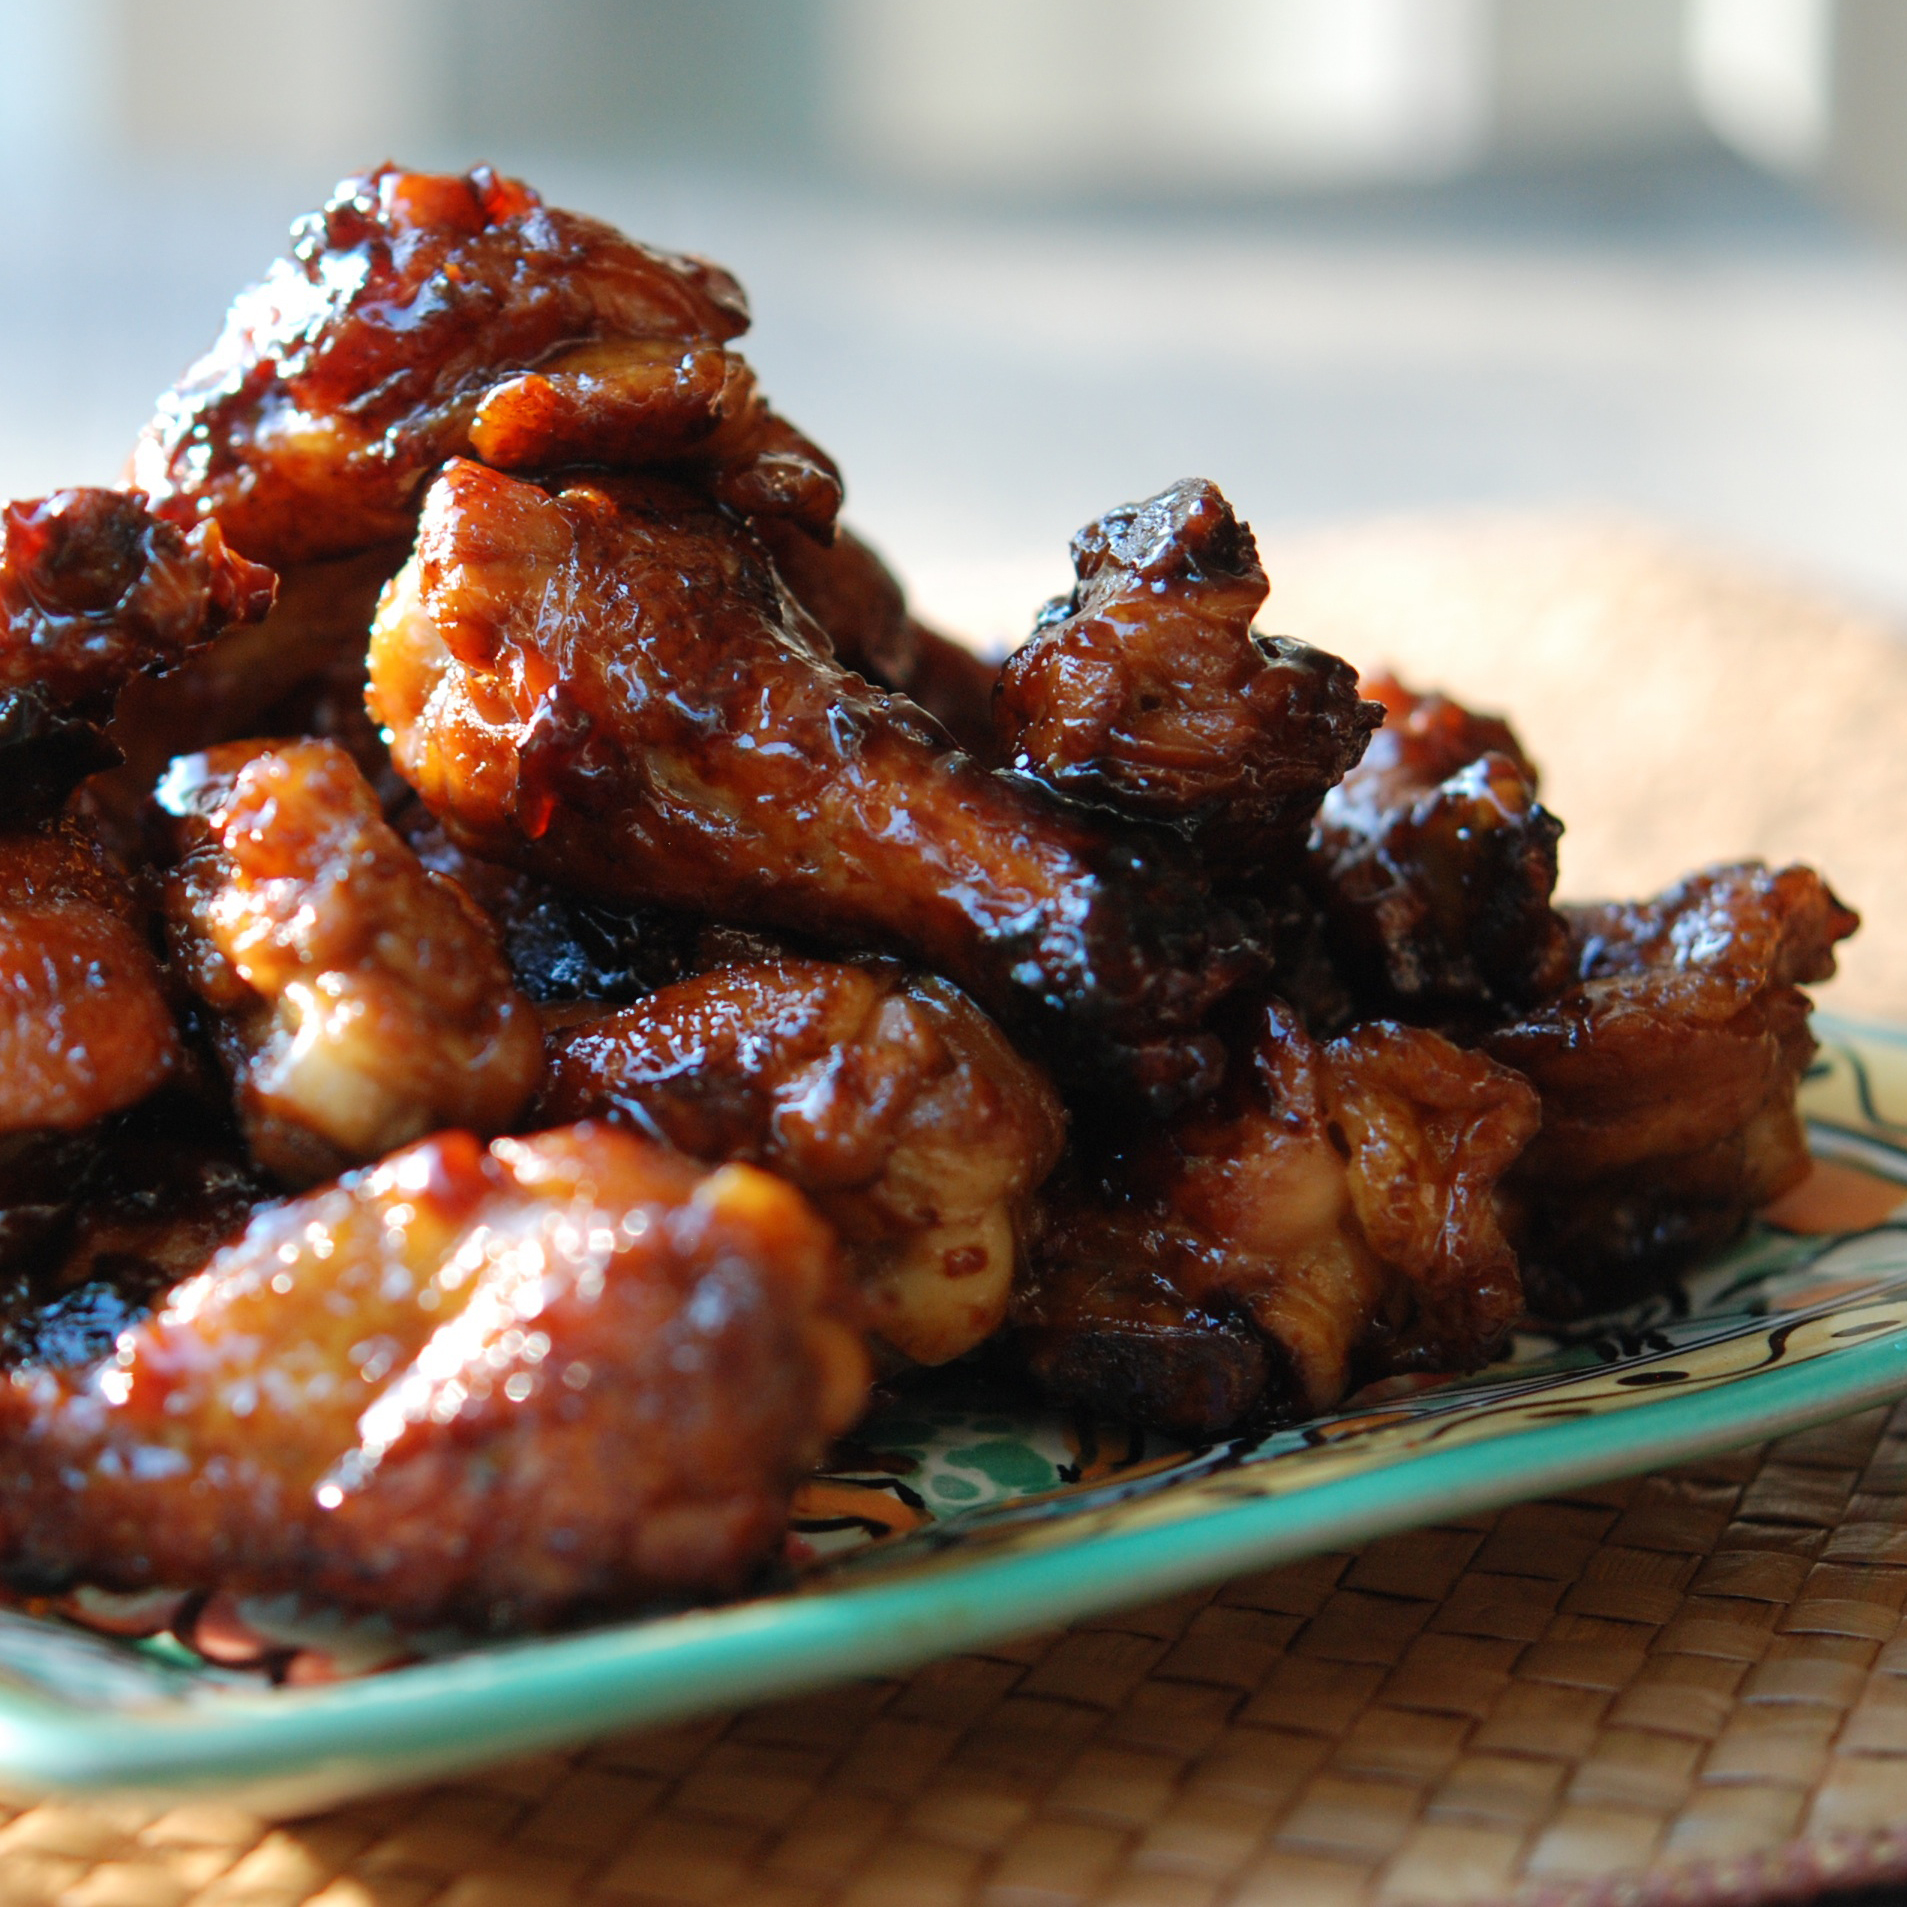 201110-r-one-pot-sticky-chicken-wings.jpg